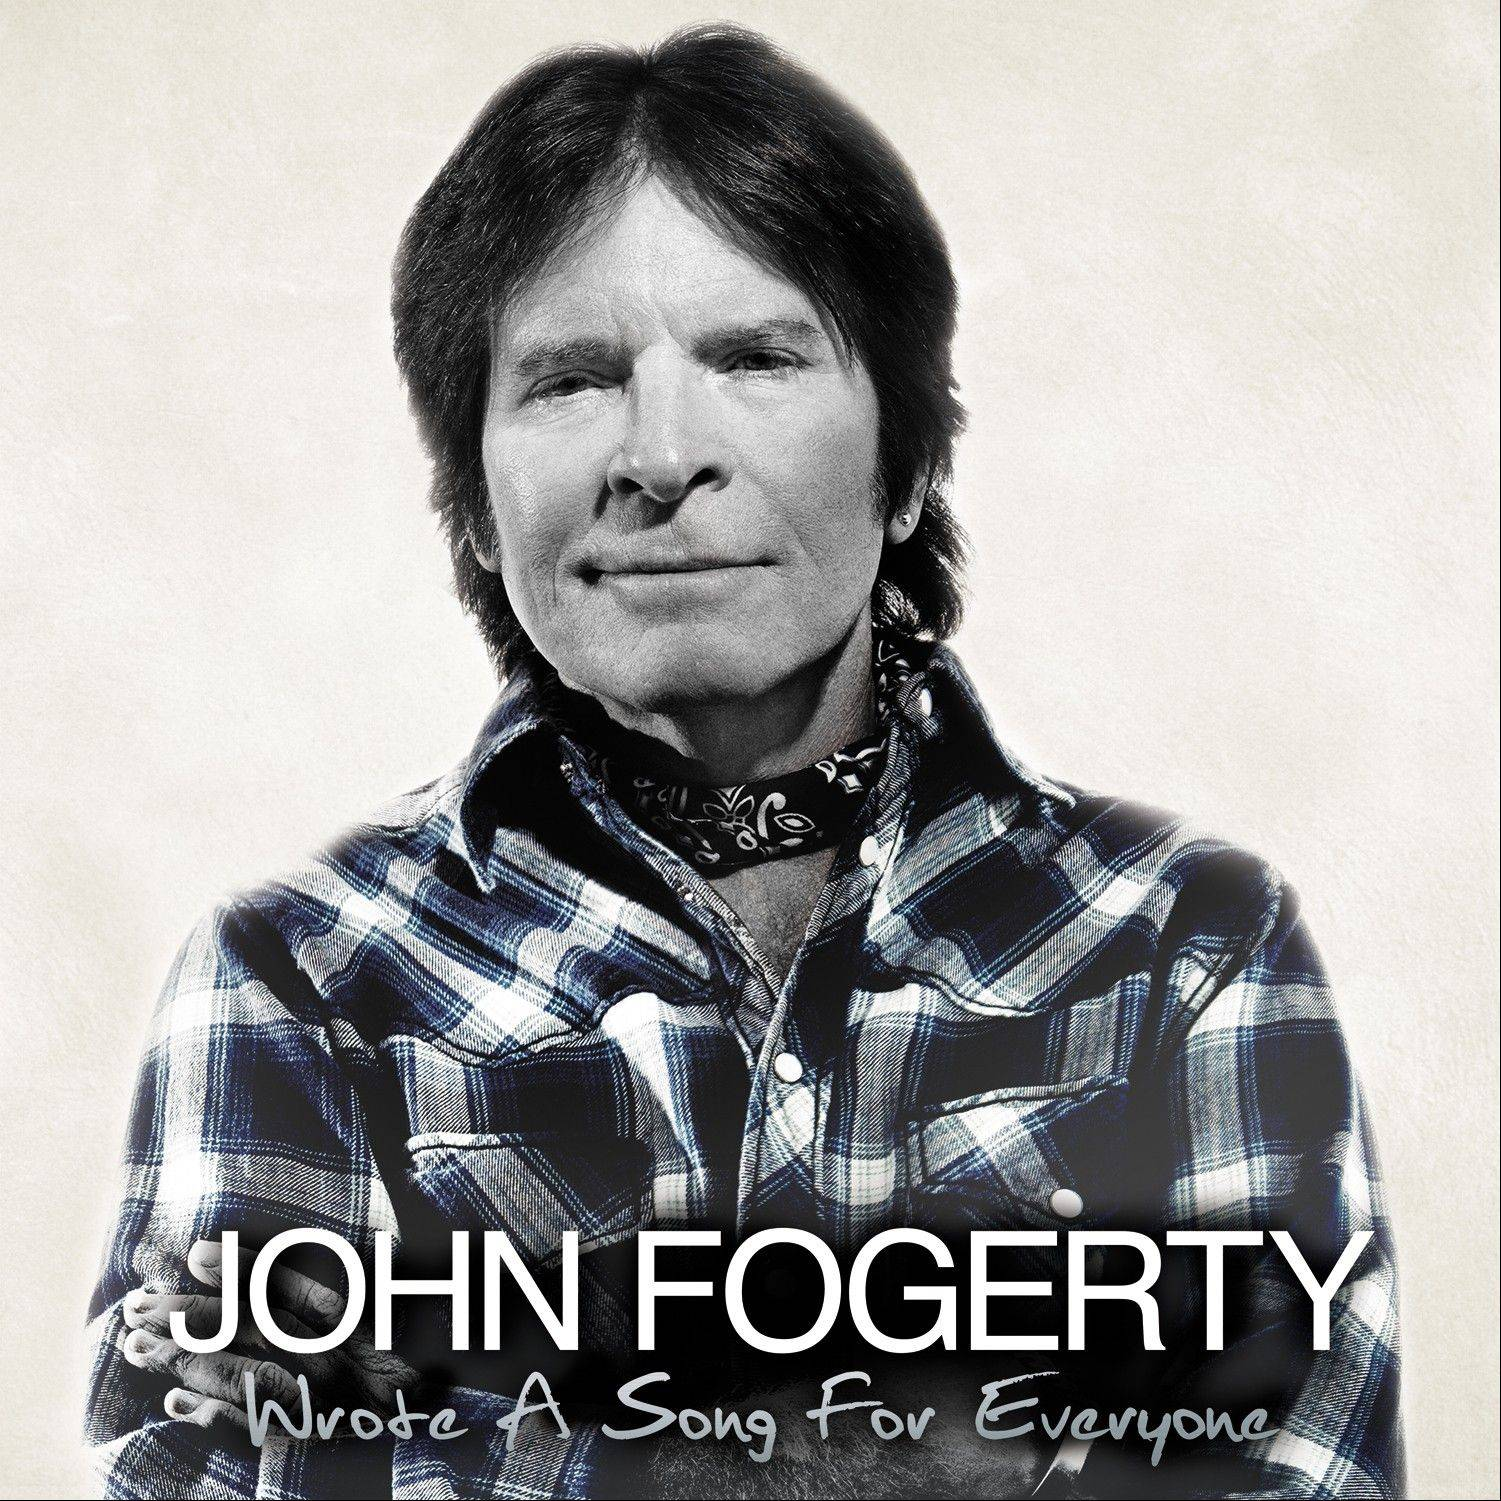 """Wrote a Song for Everyone"" by John Fogerty"